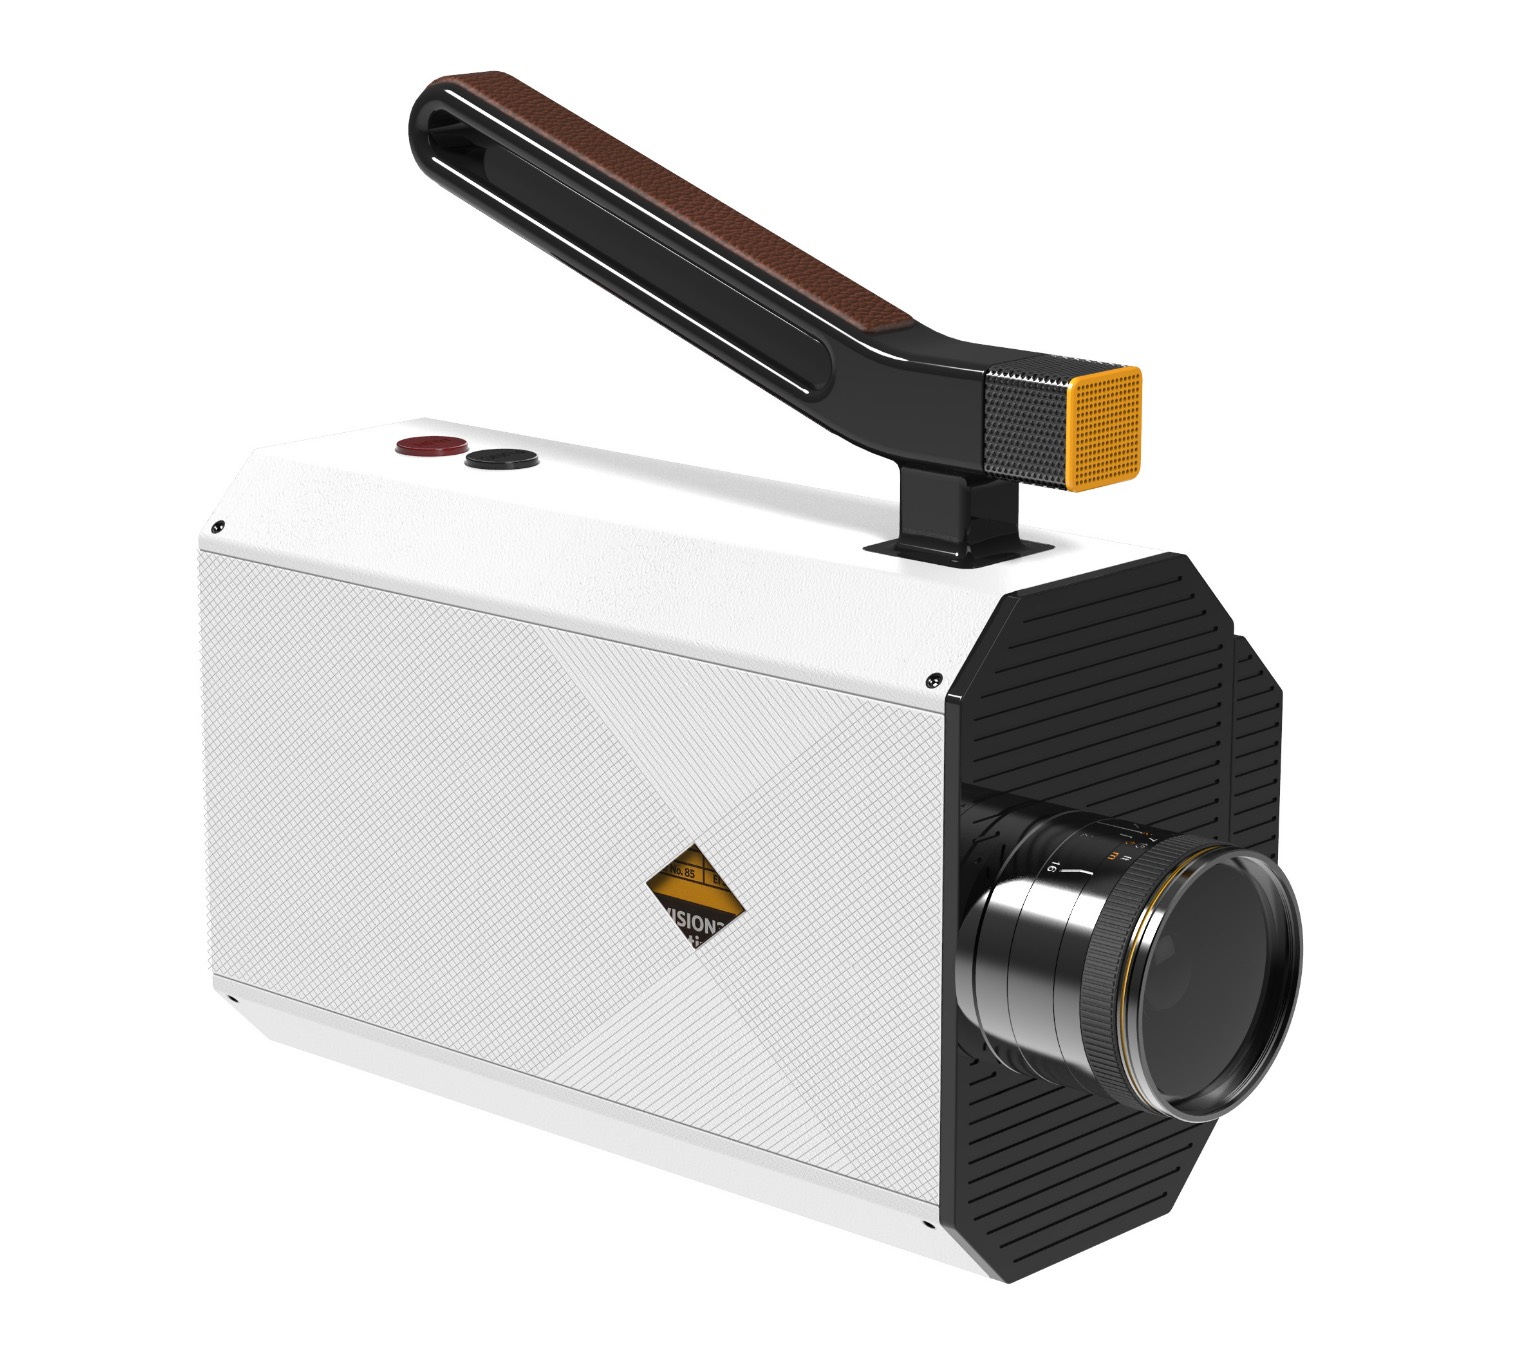 kodak super 8 camera 02